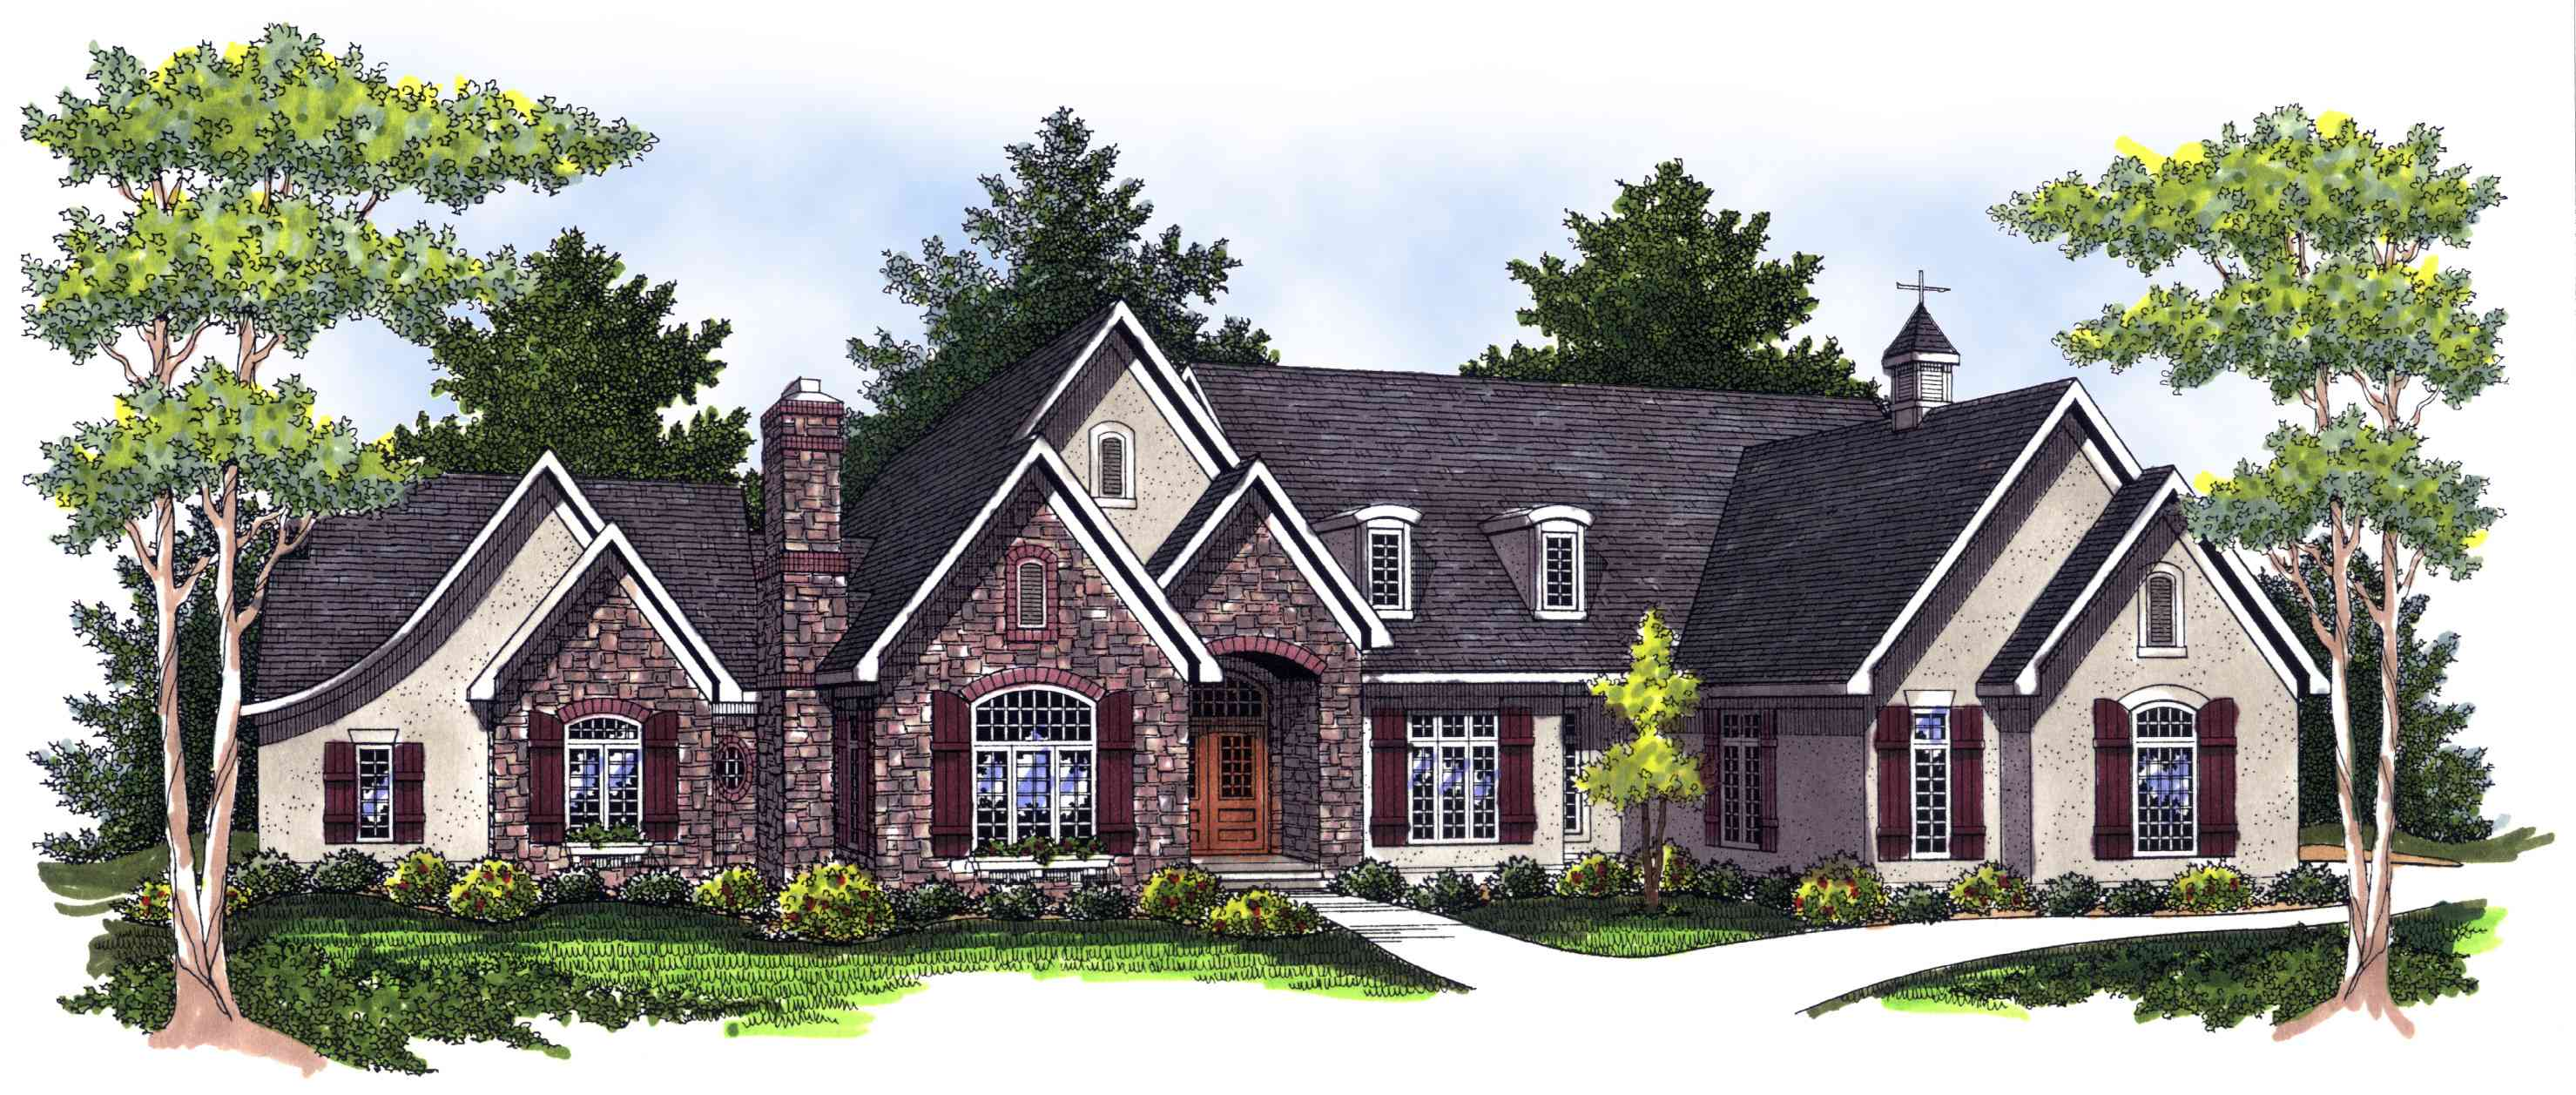 Ranch with stone and stucco mix 89249ah architectural for Stucco home floor plans